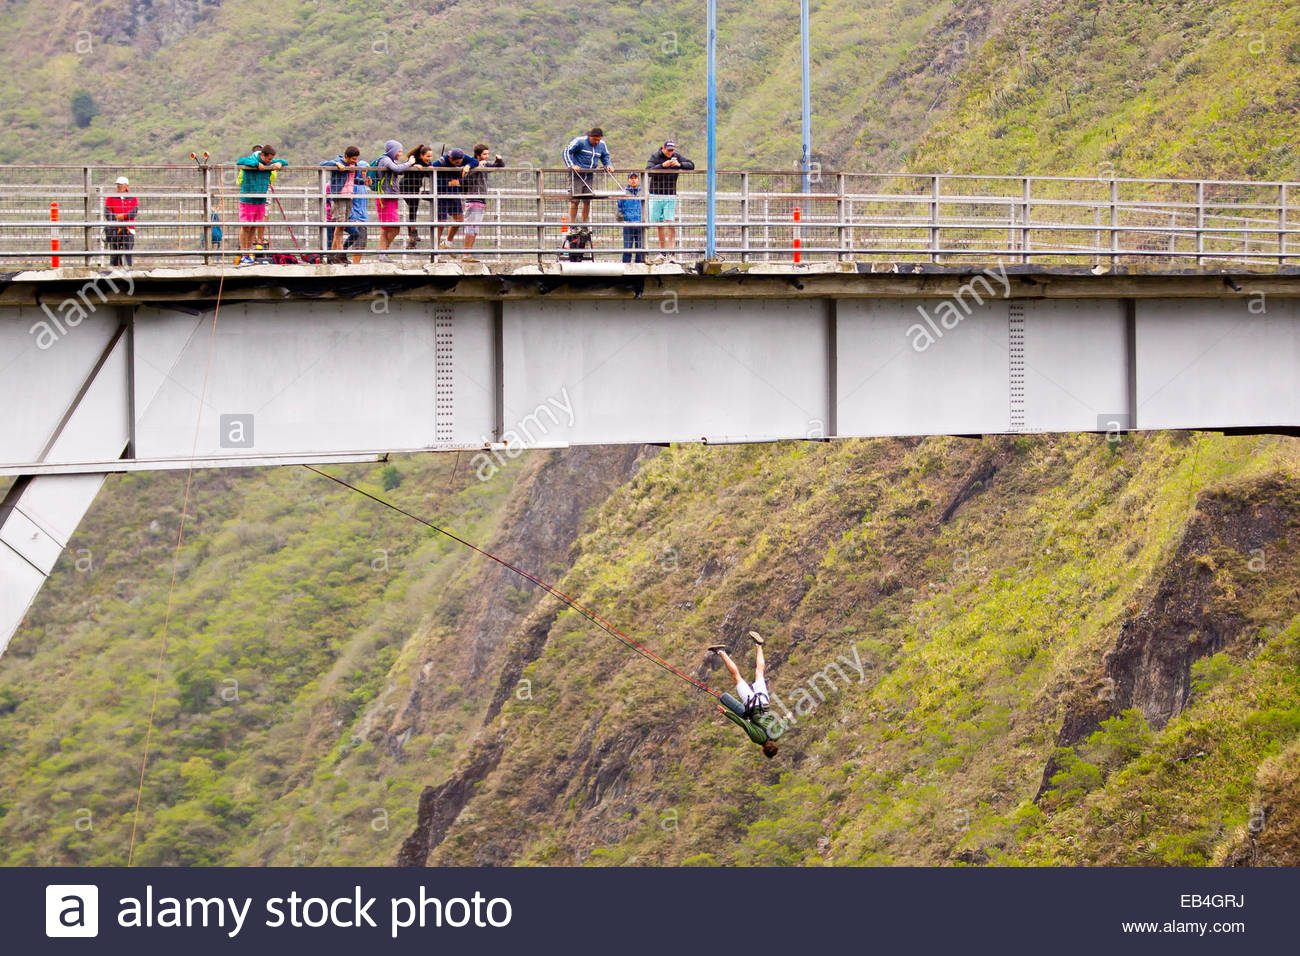 Bungee Jumping Off Bridge In Stock Photos & Bungee Jumping